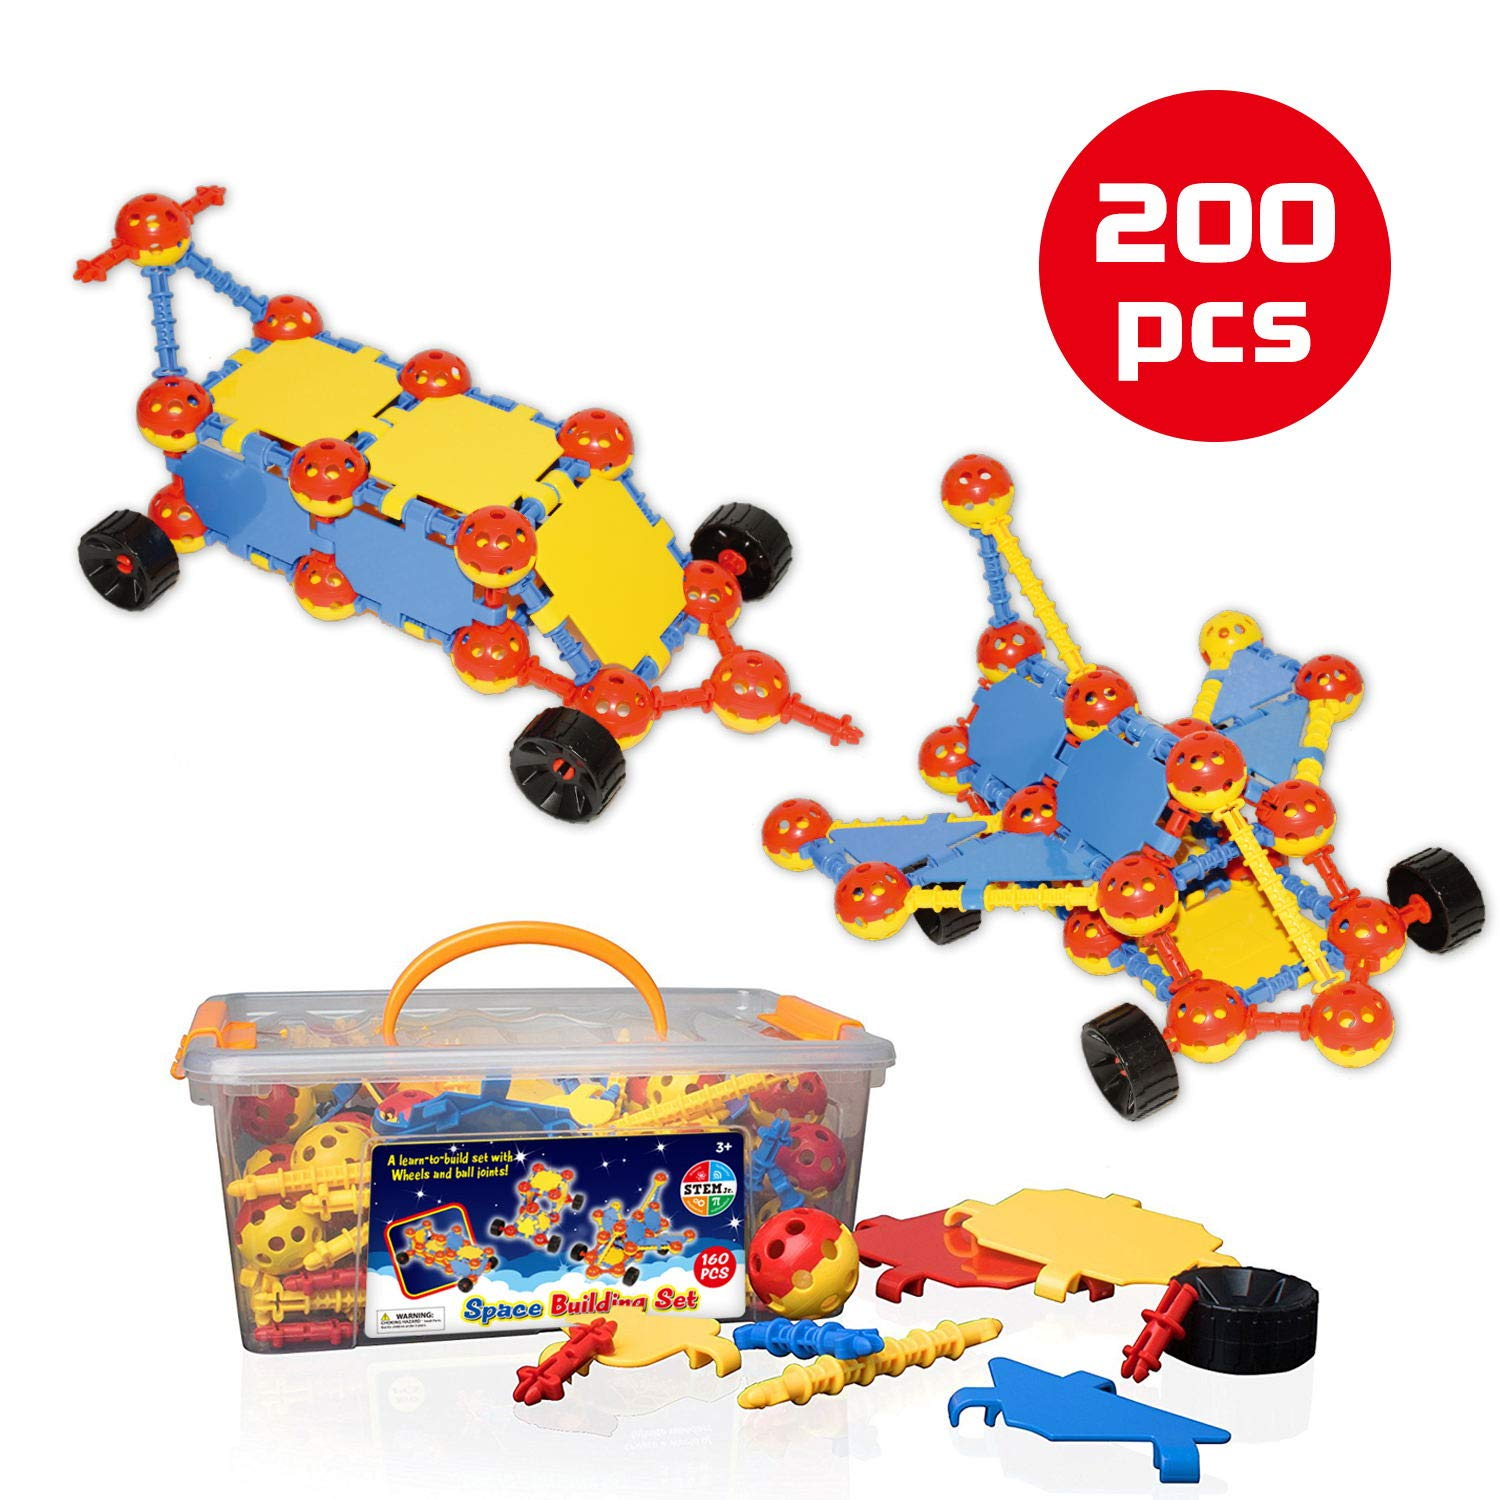 STEM BUILDING BLOCKS 200